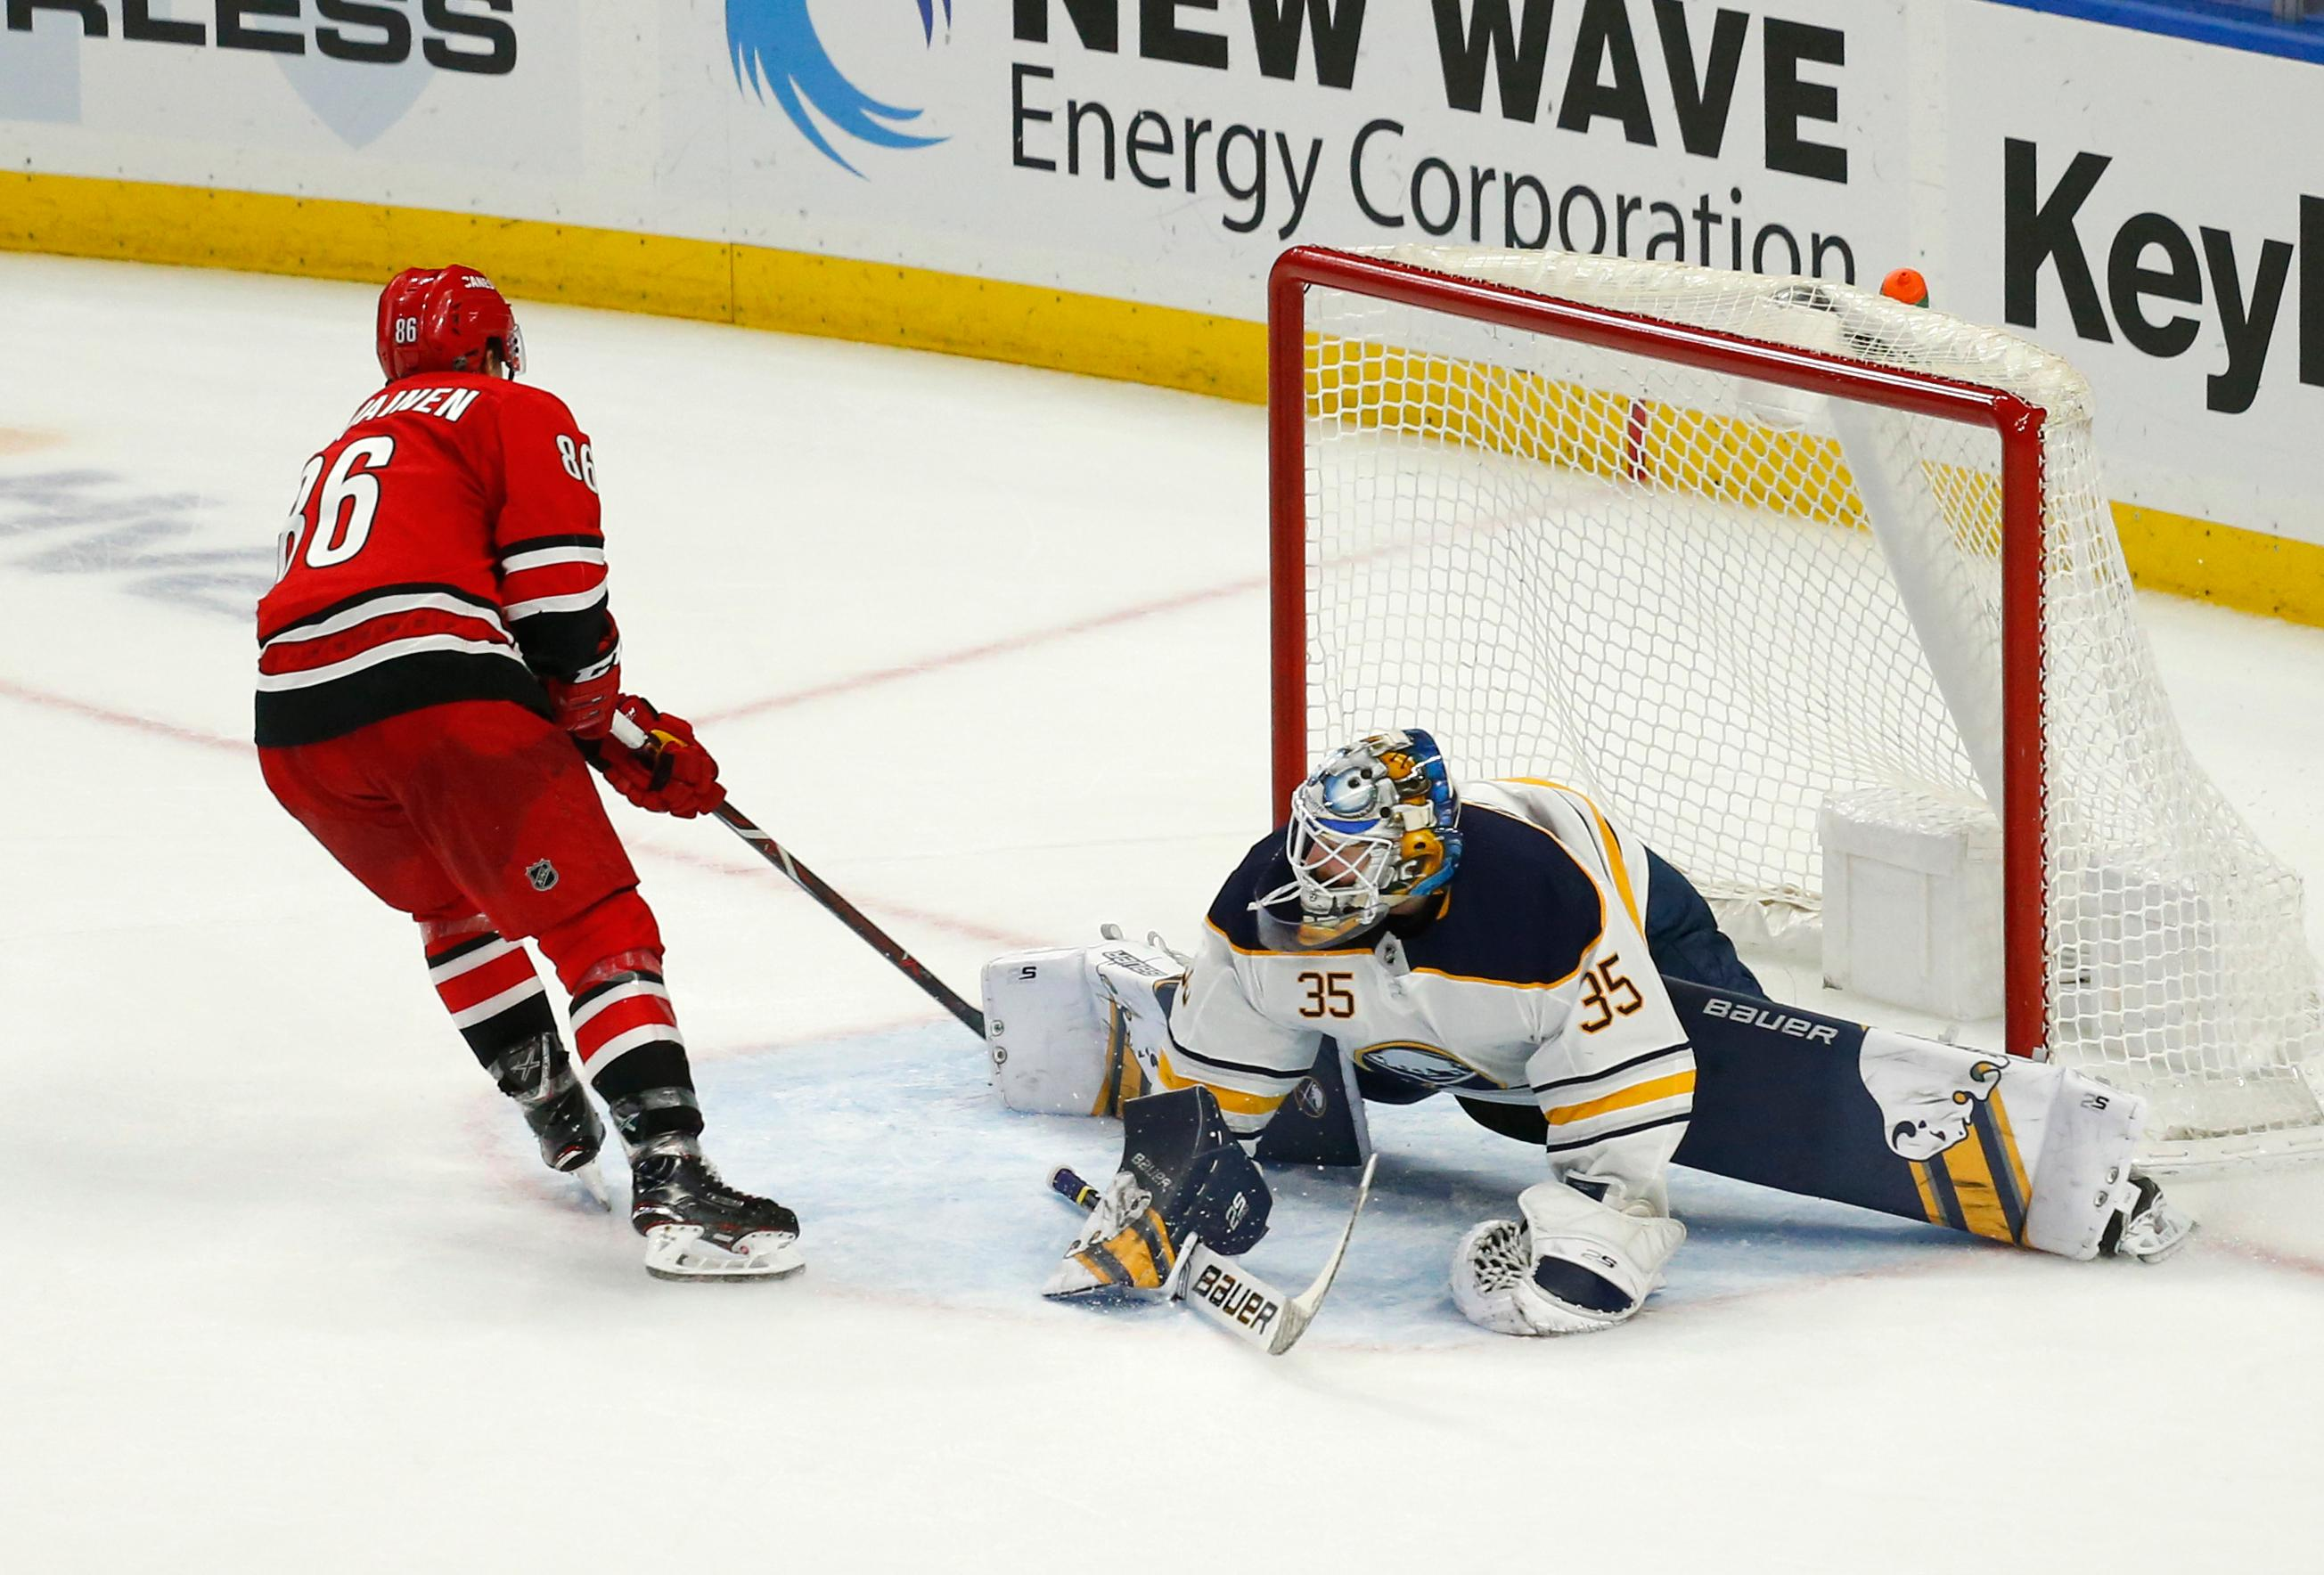 Carolina Hurricanes forward Teuvo Teravainen (86) puts the puck past Buffalo Sabres goalie Linus Ullmark (35) for a goal during overtime in an NHL hockey game, Thursday, Feb. 7, 2019, in Buffalo, N.Y. (AP Photo/Jeffrey T. Barnes)